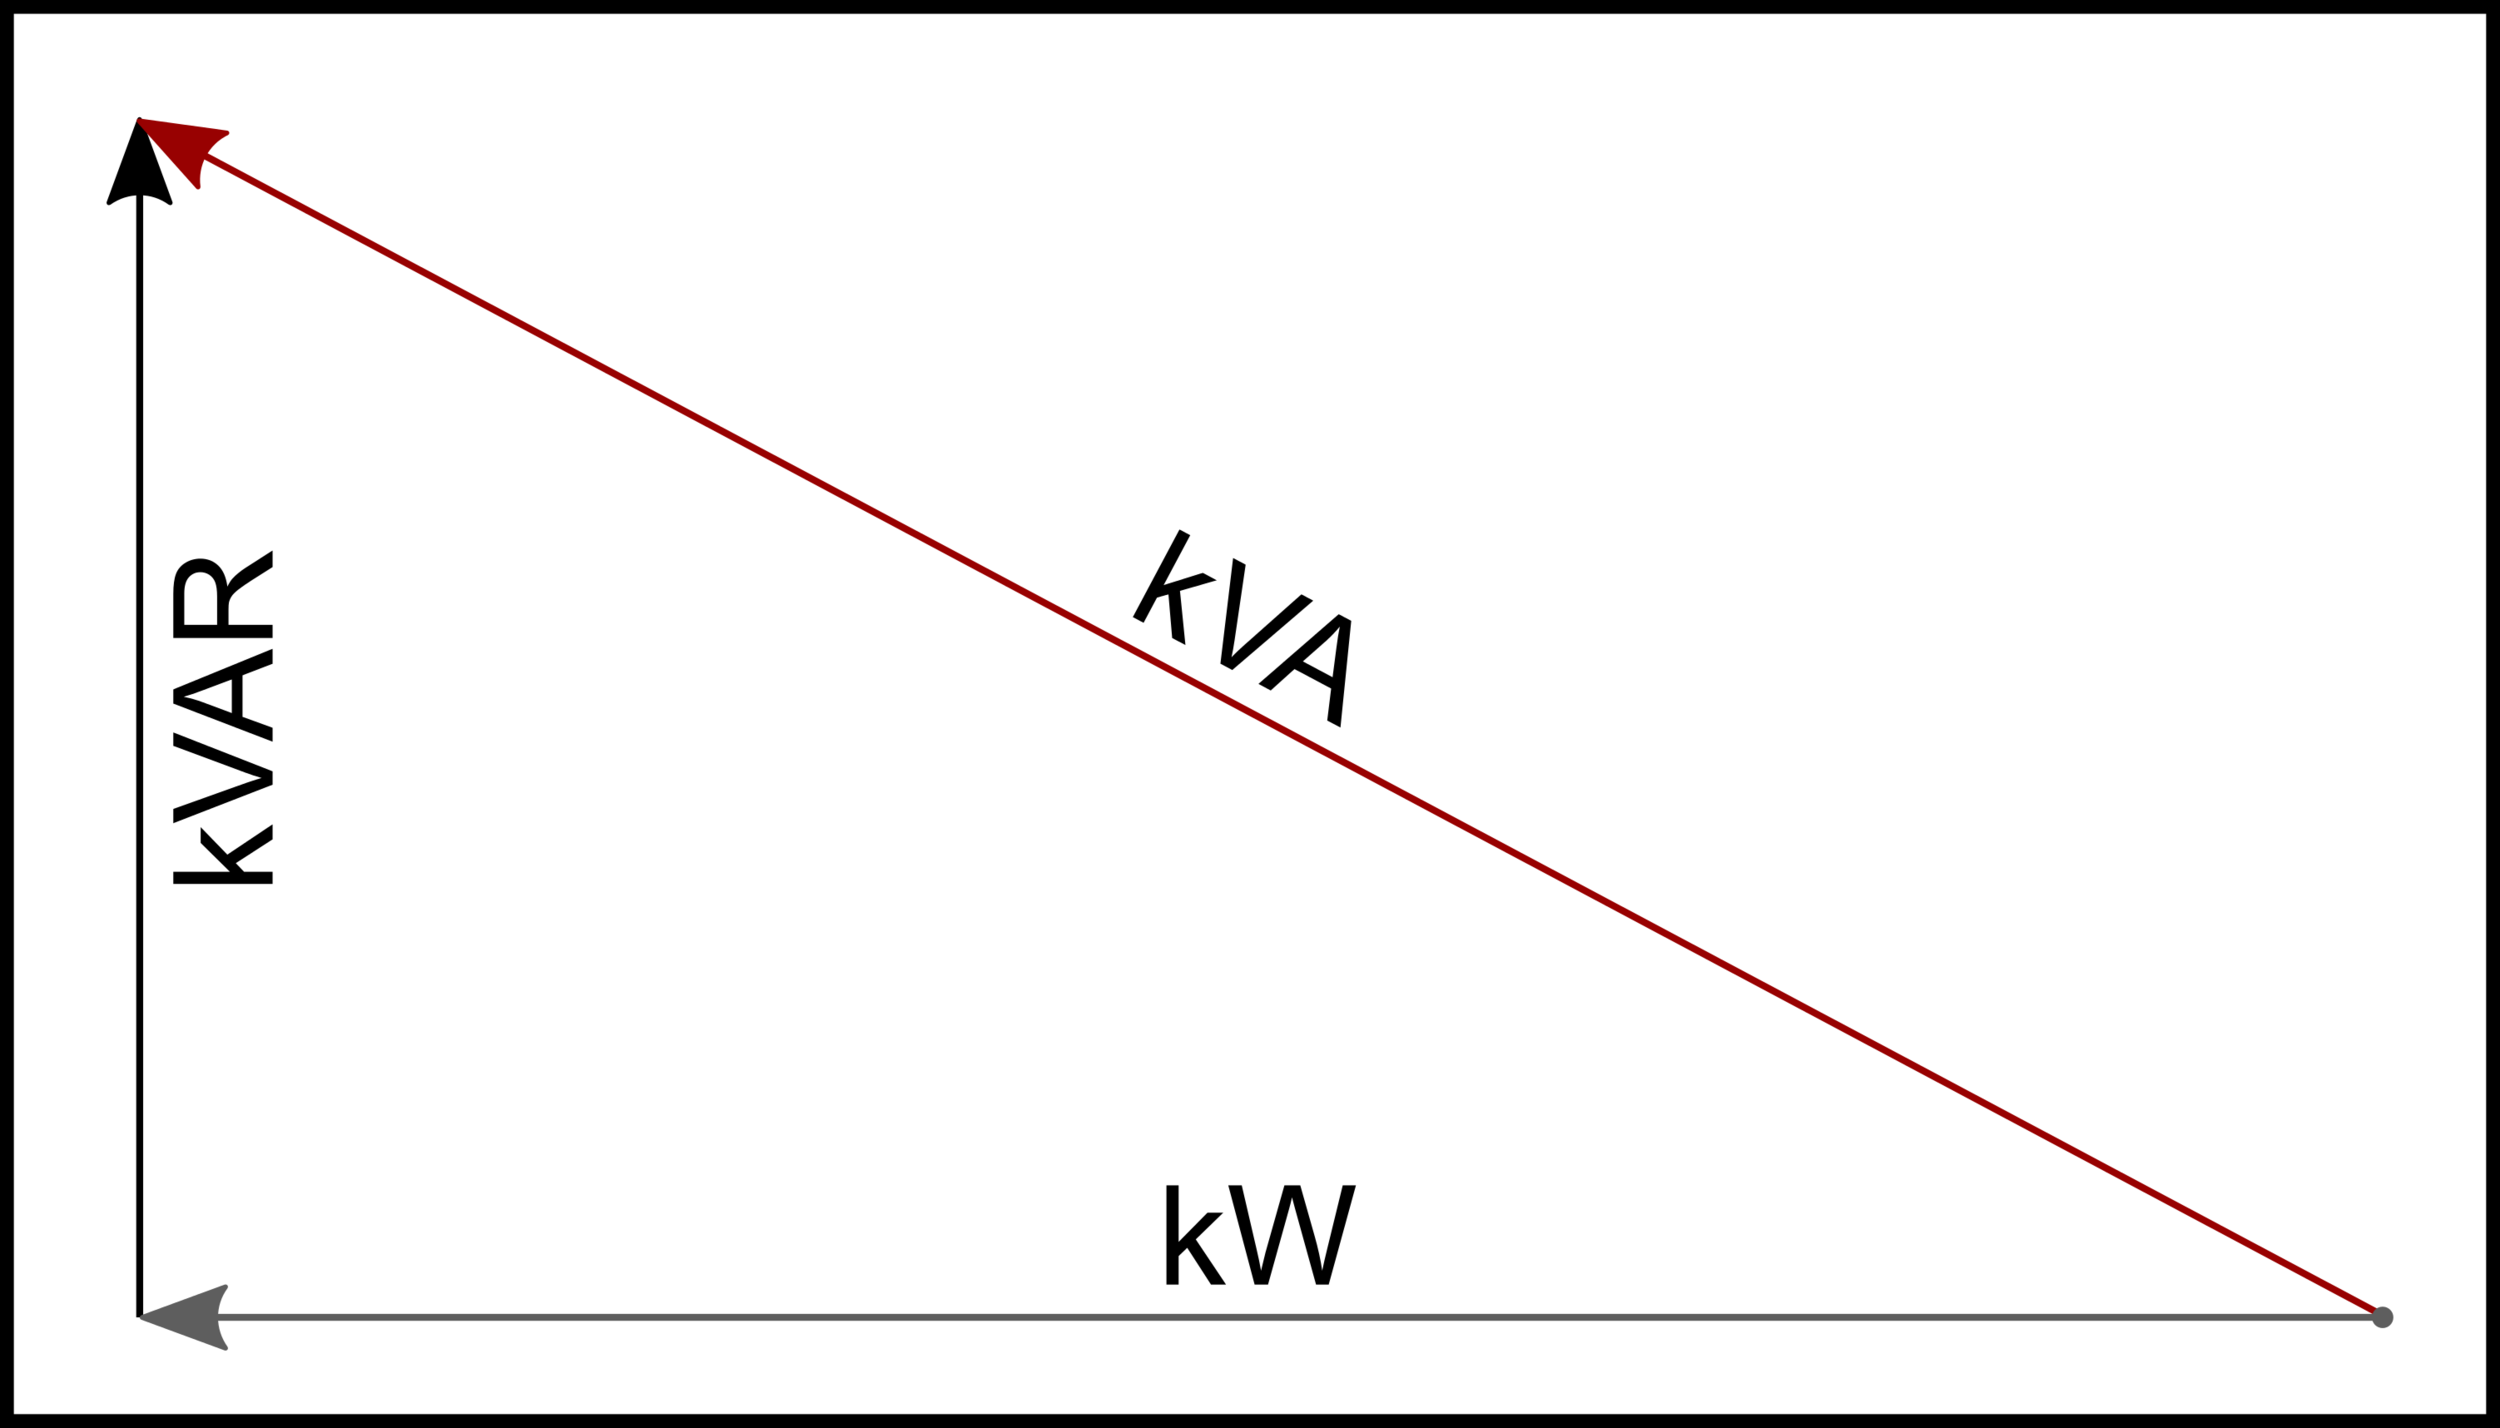 In an efficient electrical system, kVAR is low, and KW and KVA are in a near 1:1 ratio.